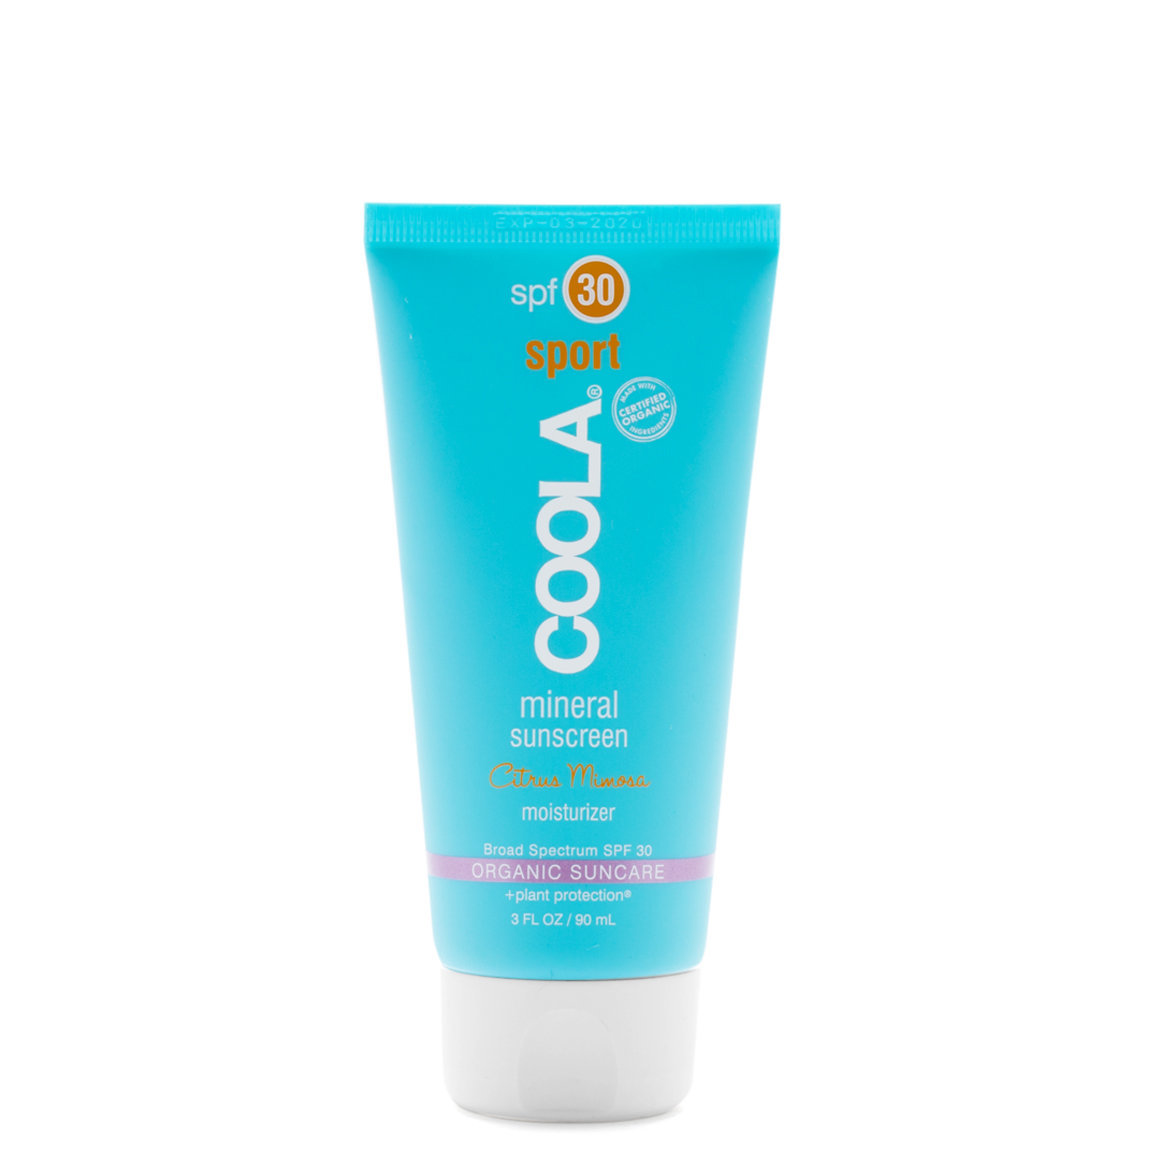 COOLA Mineral Sport Sunscreen Moisturizer SPF 30 - Citrus Mimosa product swatch.